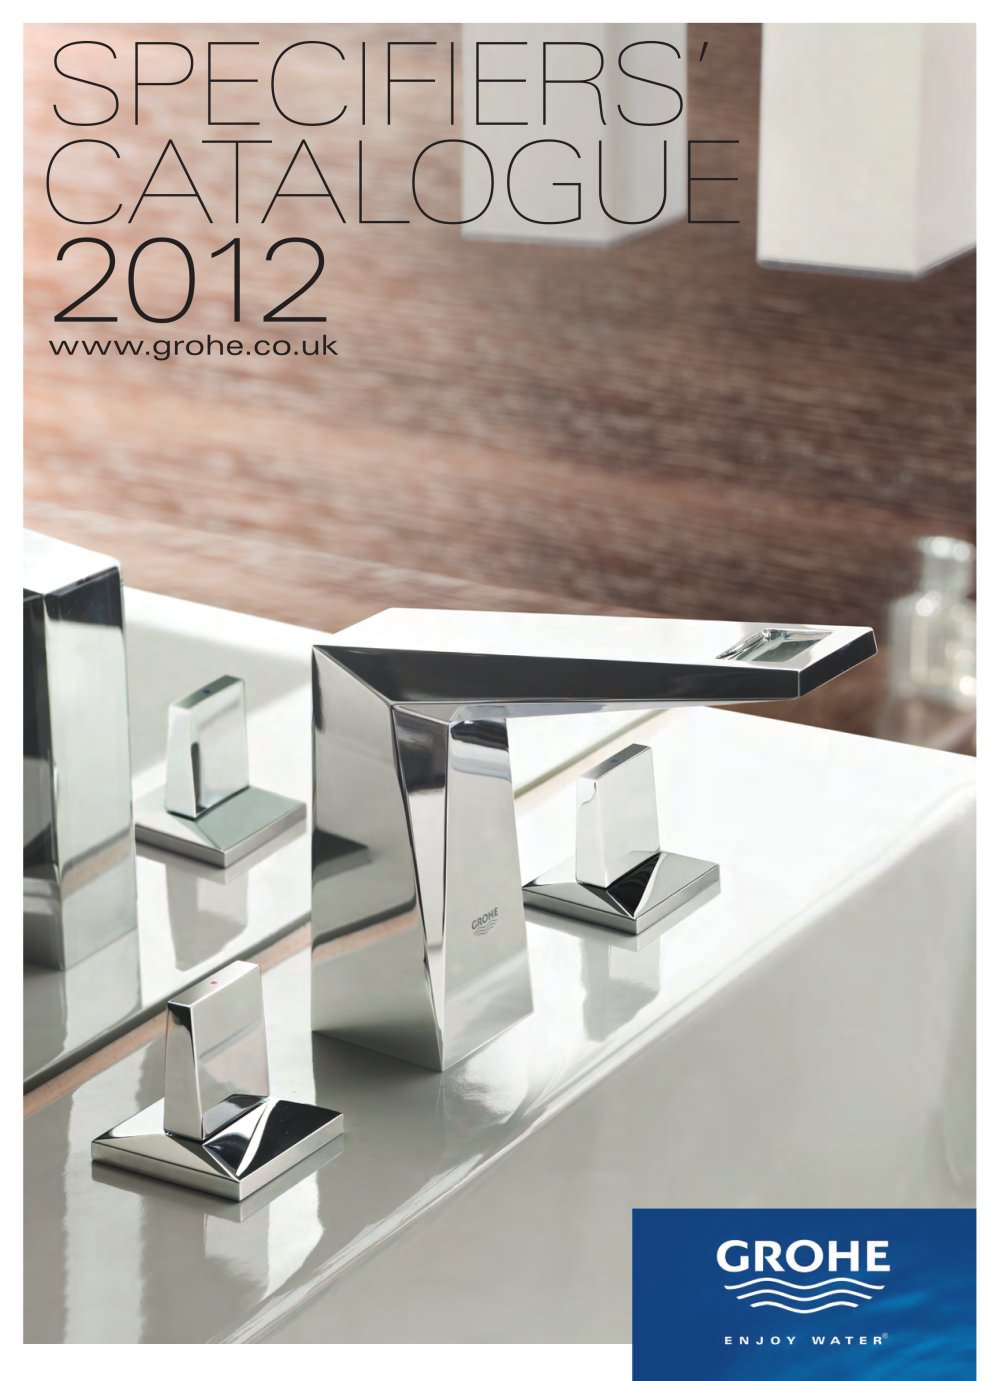 Specifiers\' Catalogue 2012 - GROHE - PDF Catalogues | Documentation ...